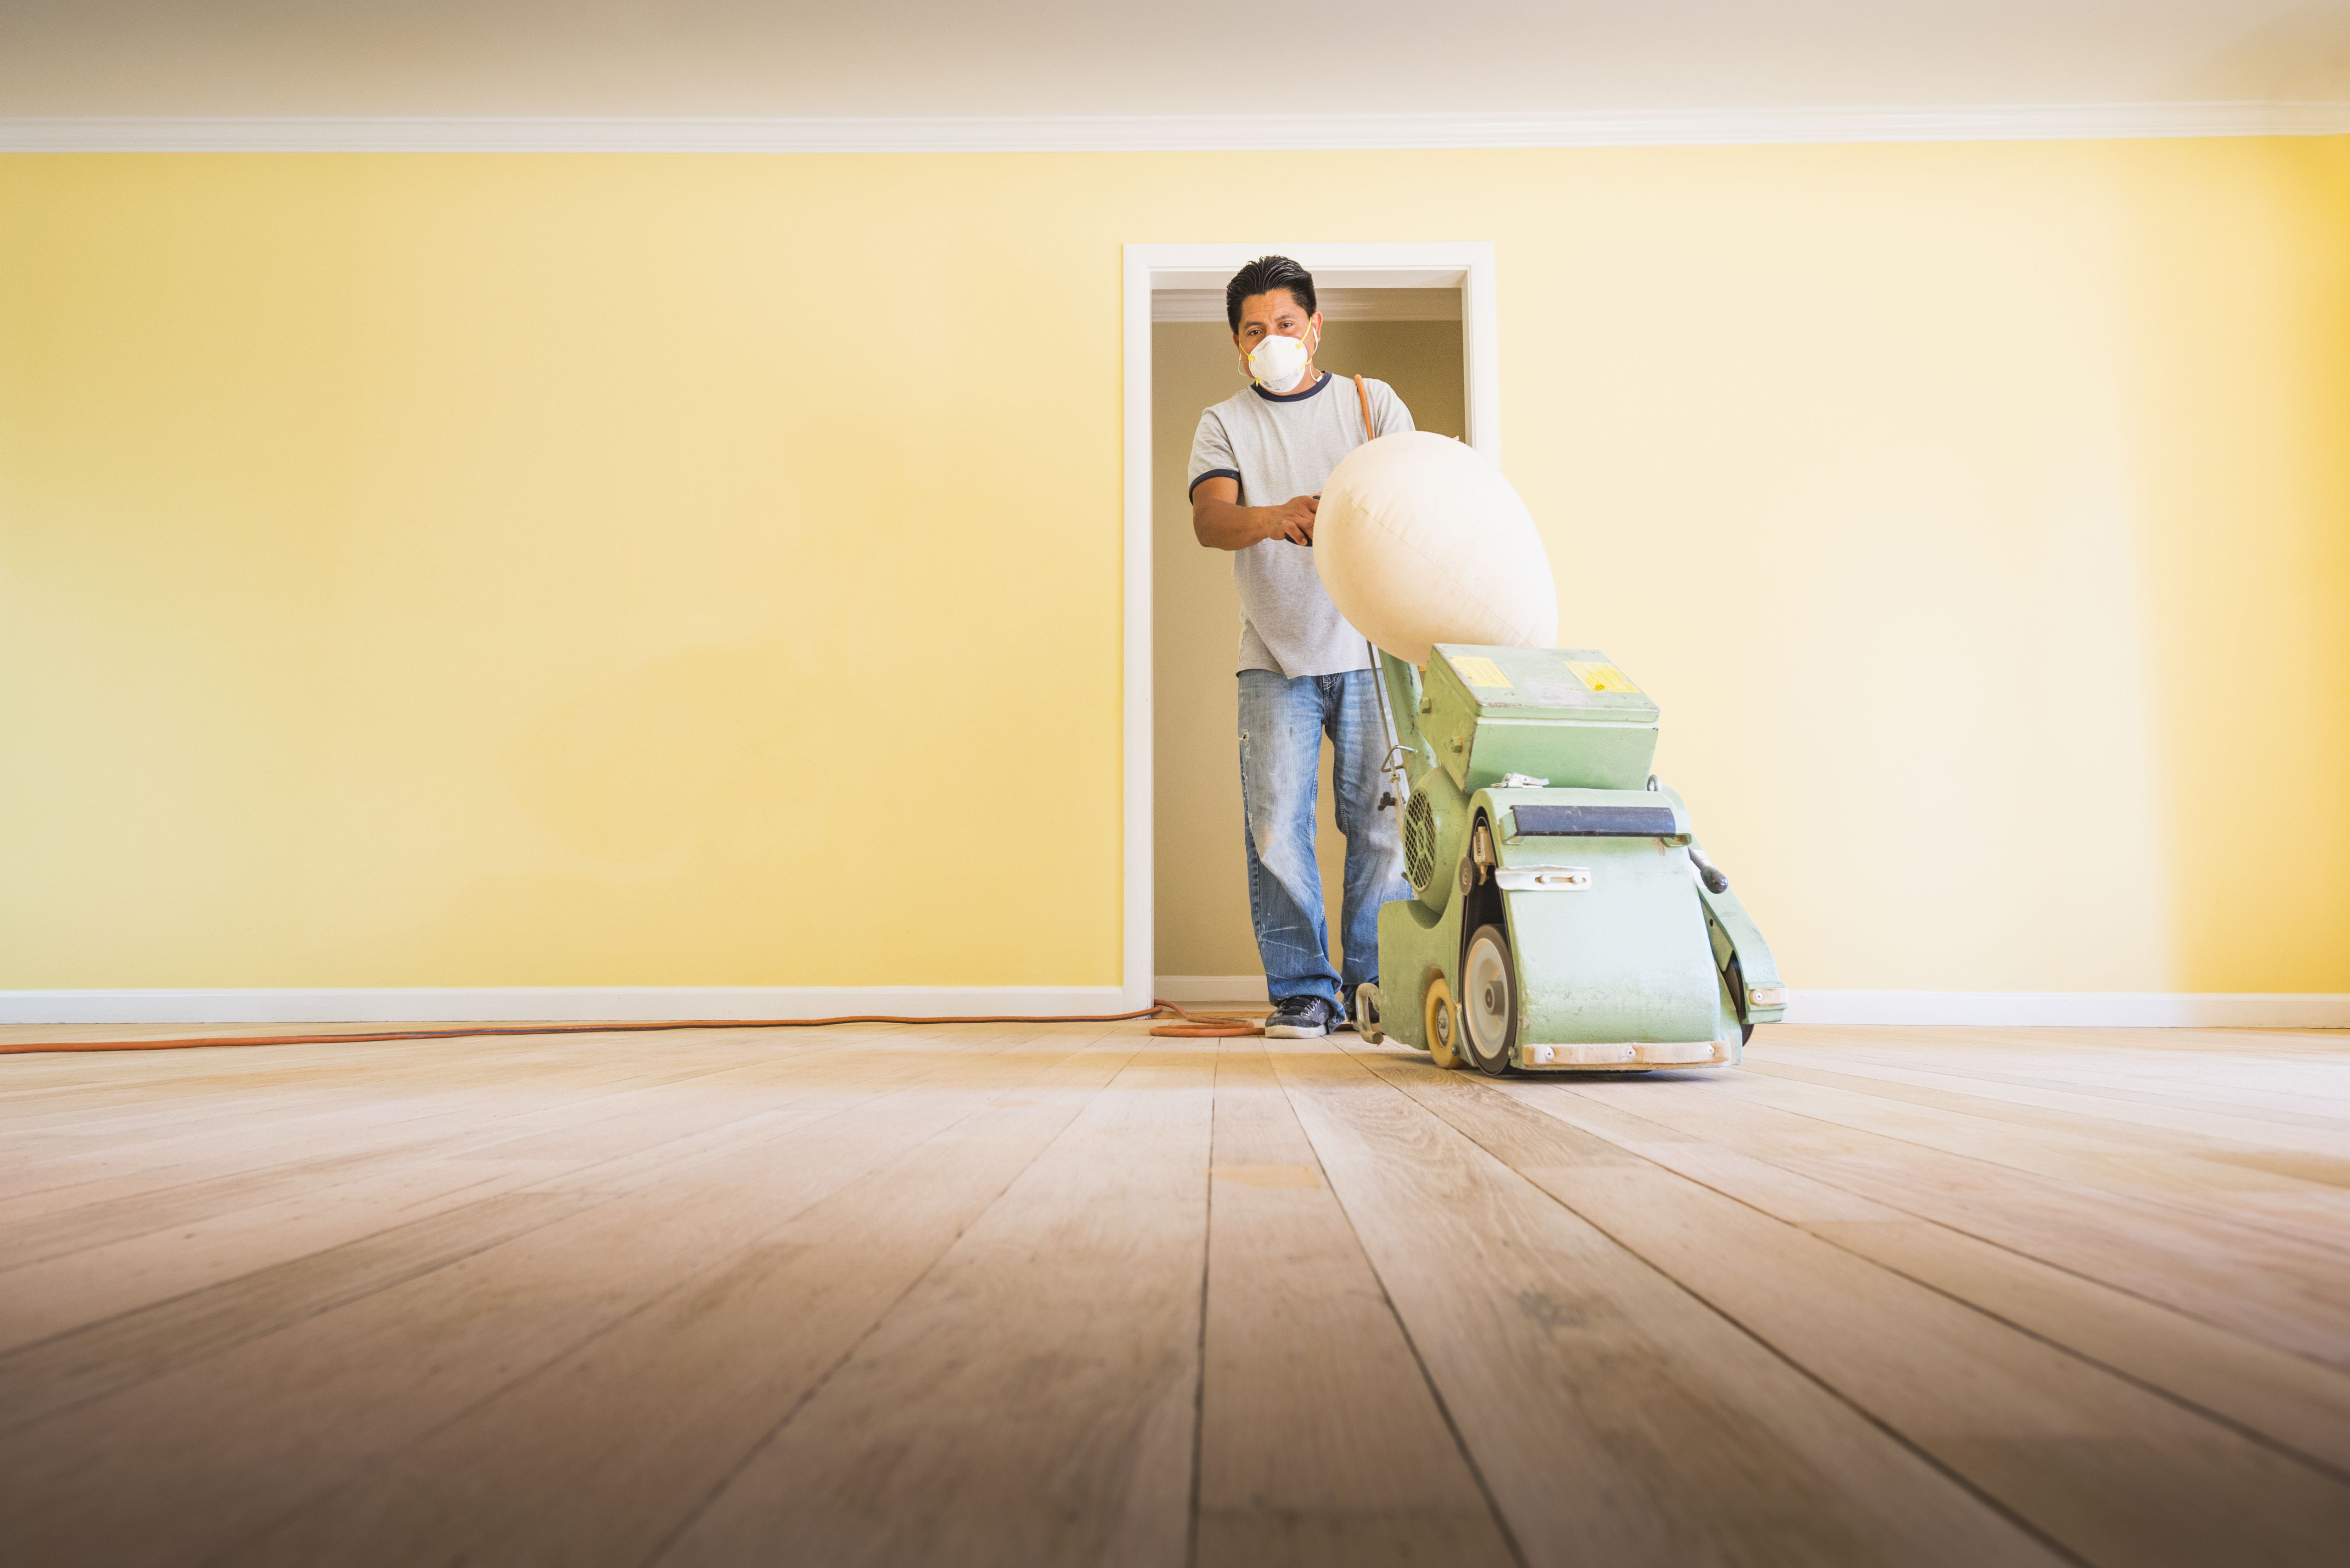 hardwood floor refinishing how long to dry of should you paint walls or refinish floors first in floorsandingafterpainting 5a8f08dfae9ab80037d9d878